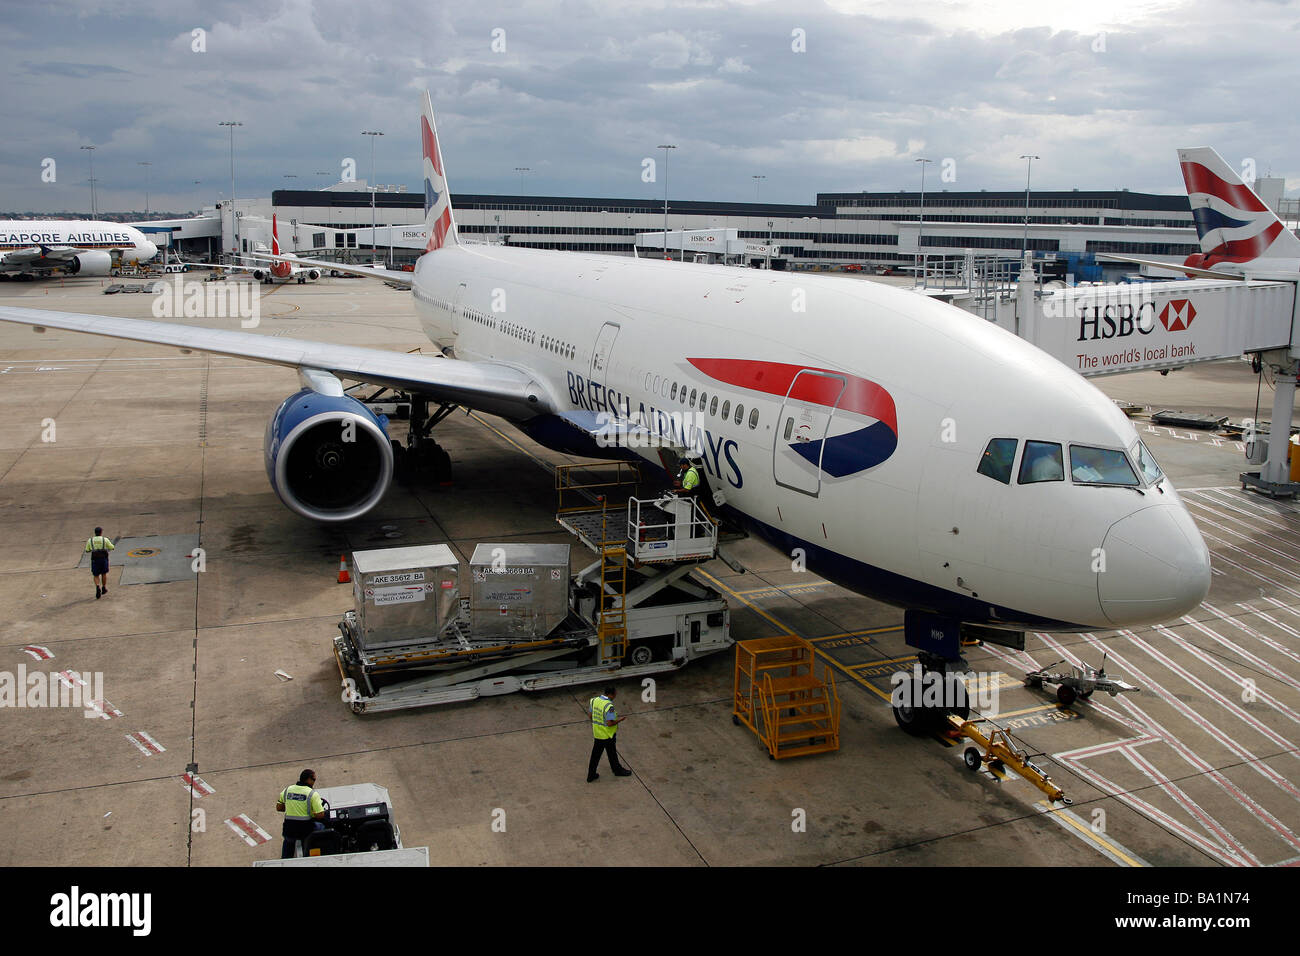 A British Airways Boeing 777-200 aircraft sits on the tarmac at Sydney Kingsford Smith International Airport - Stock Image